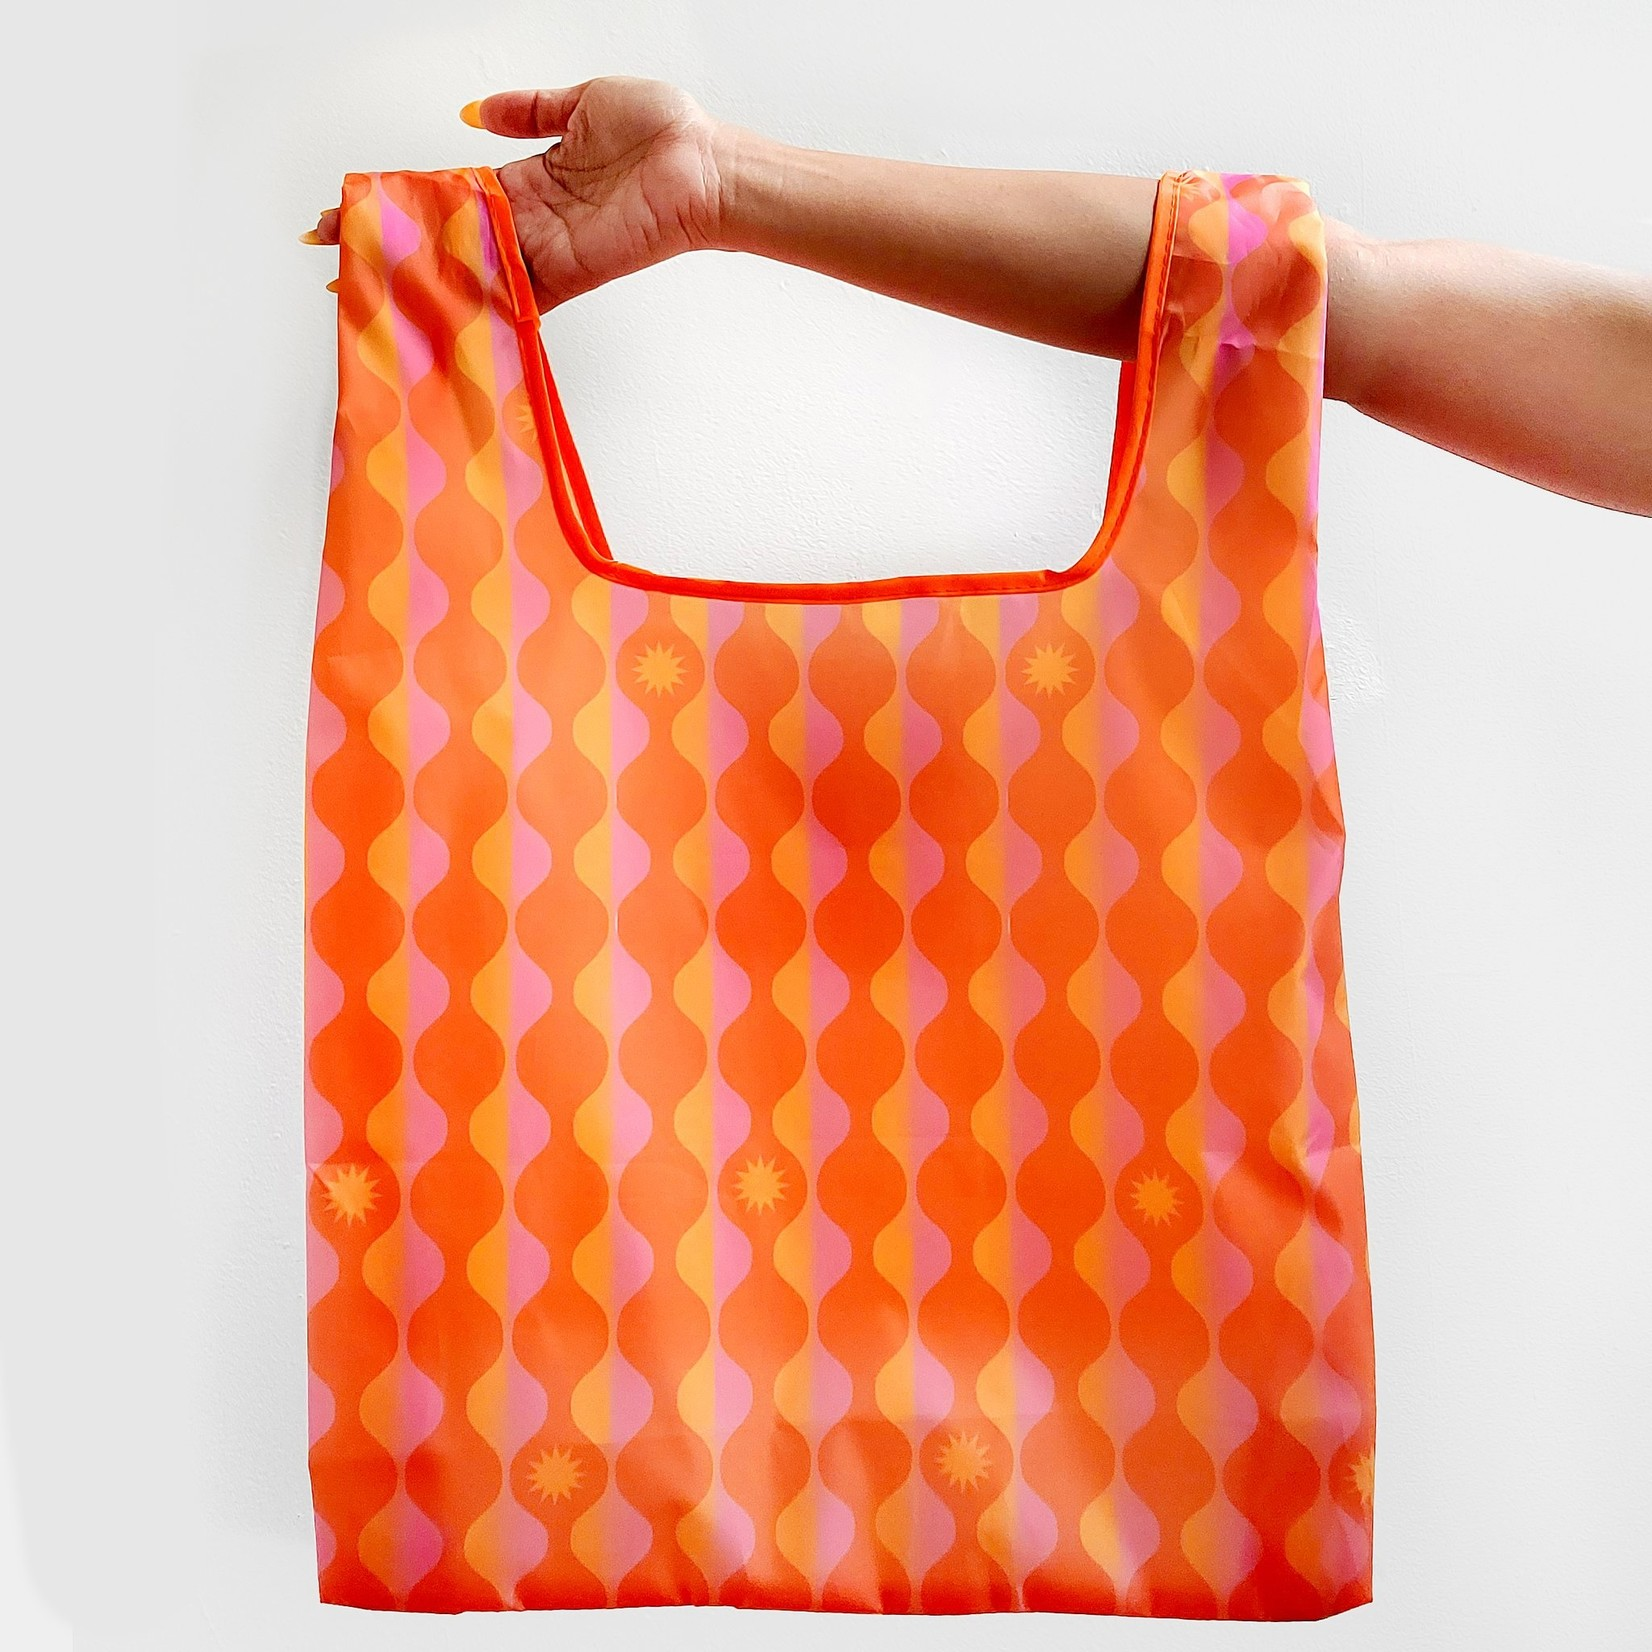 Have A Nice Day c/o Faire Nice Day Reusable Bag